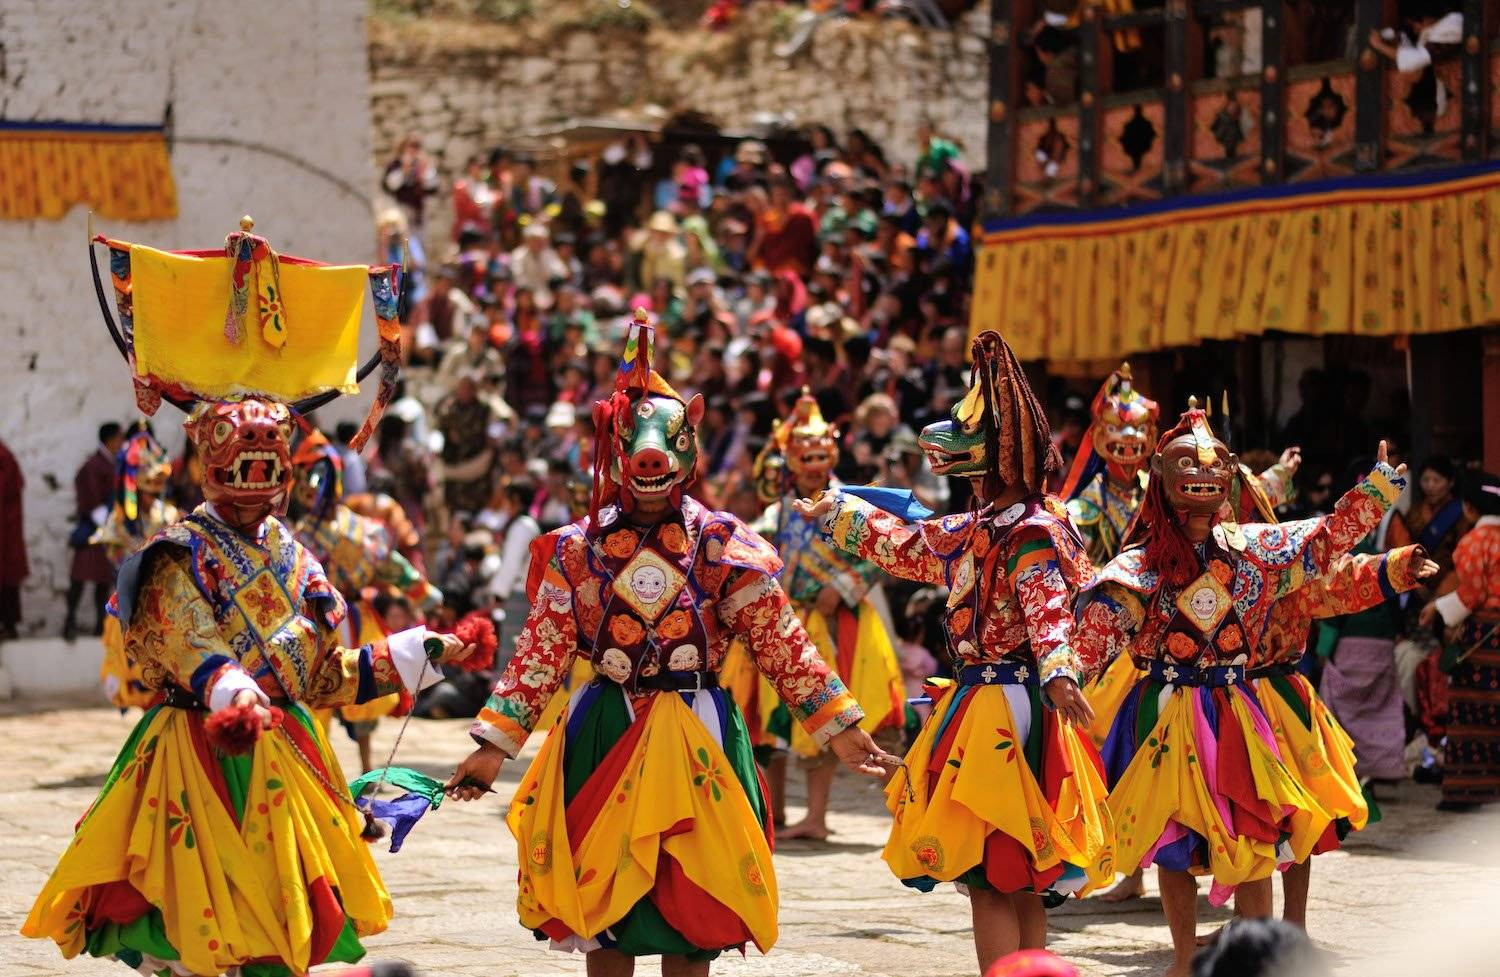 Masked Dancers at the Paro Tsechu Festival or Spring Festival